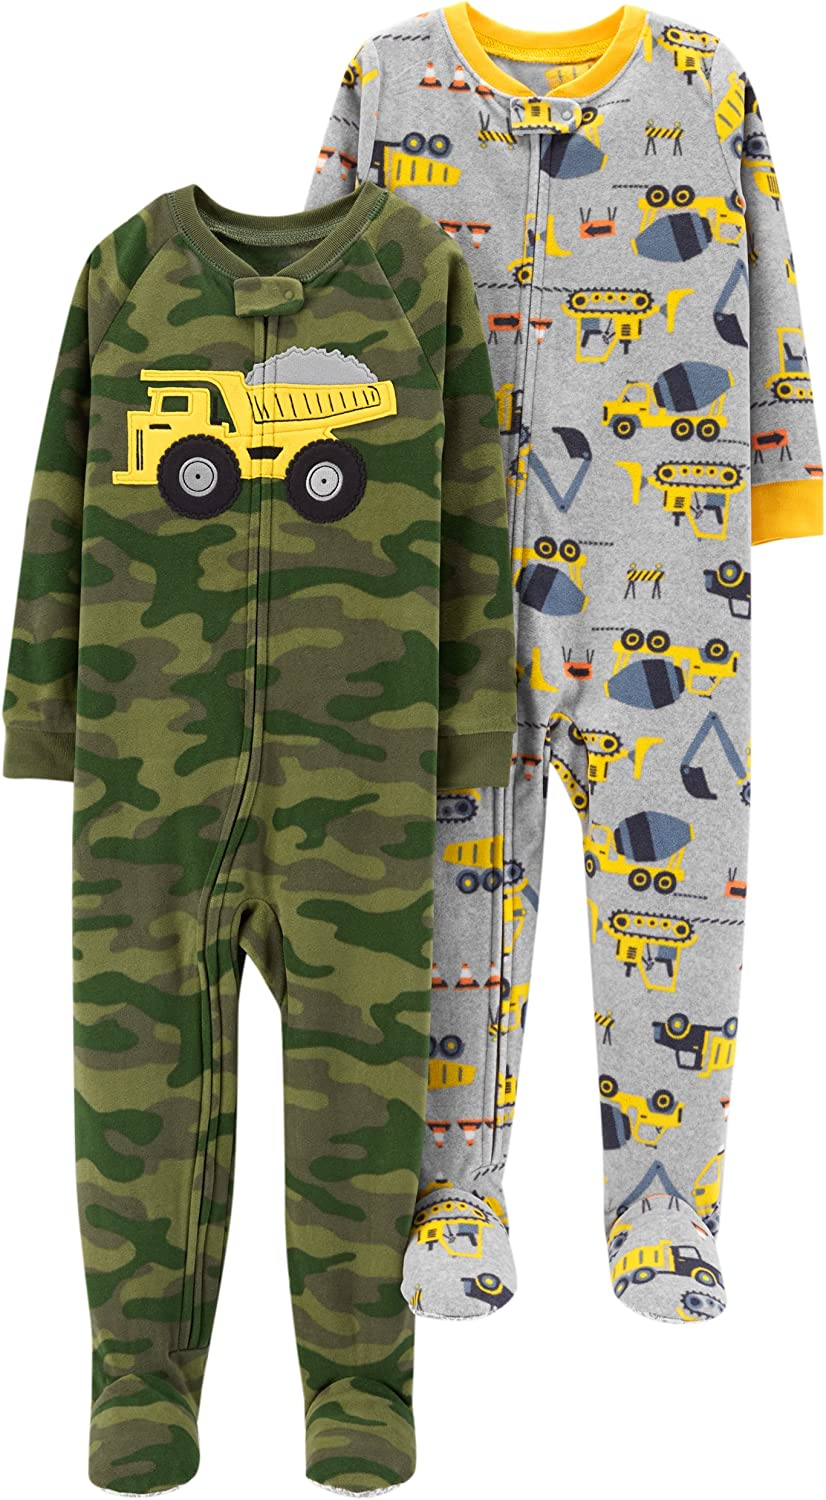 Carters Baby-Boys 2-Pack Fleece Pajama Set